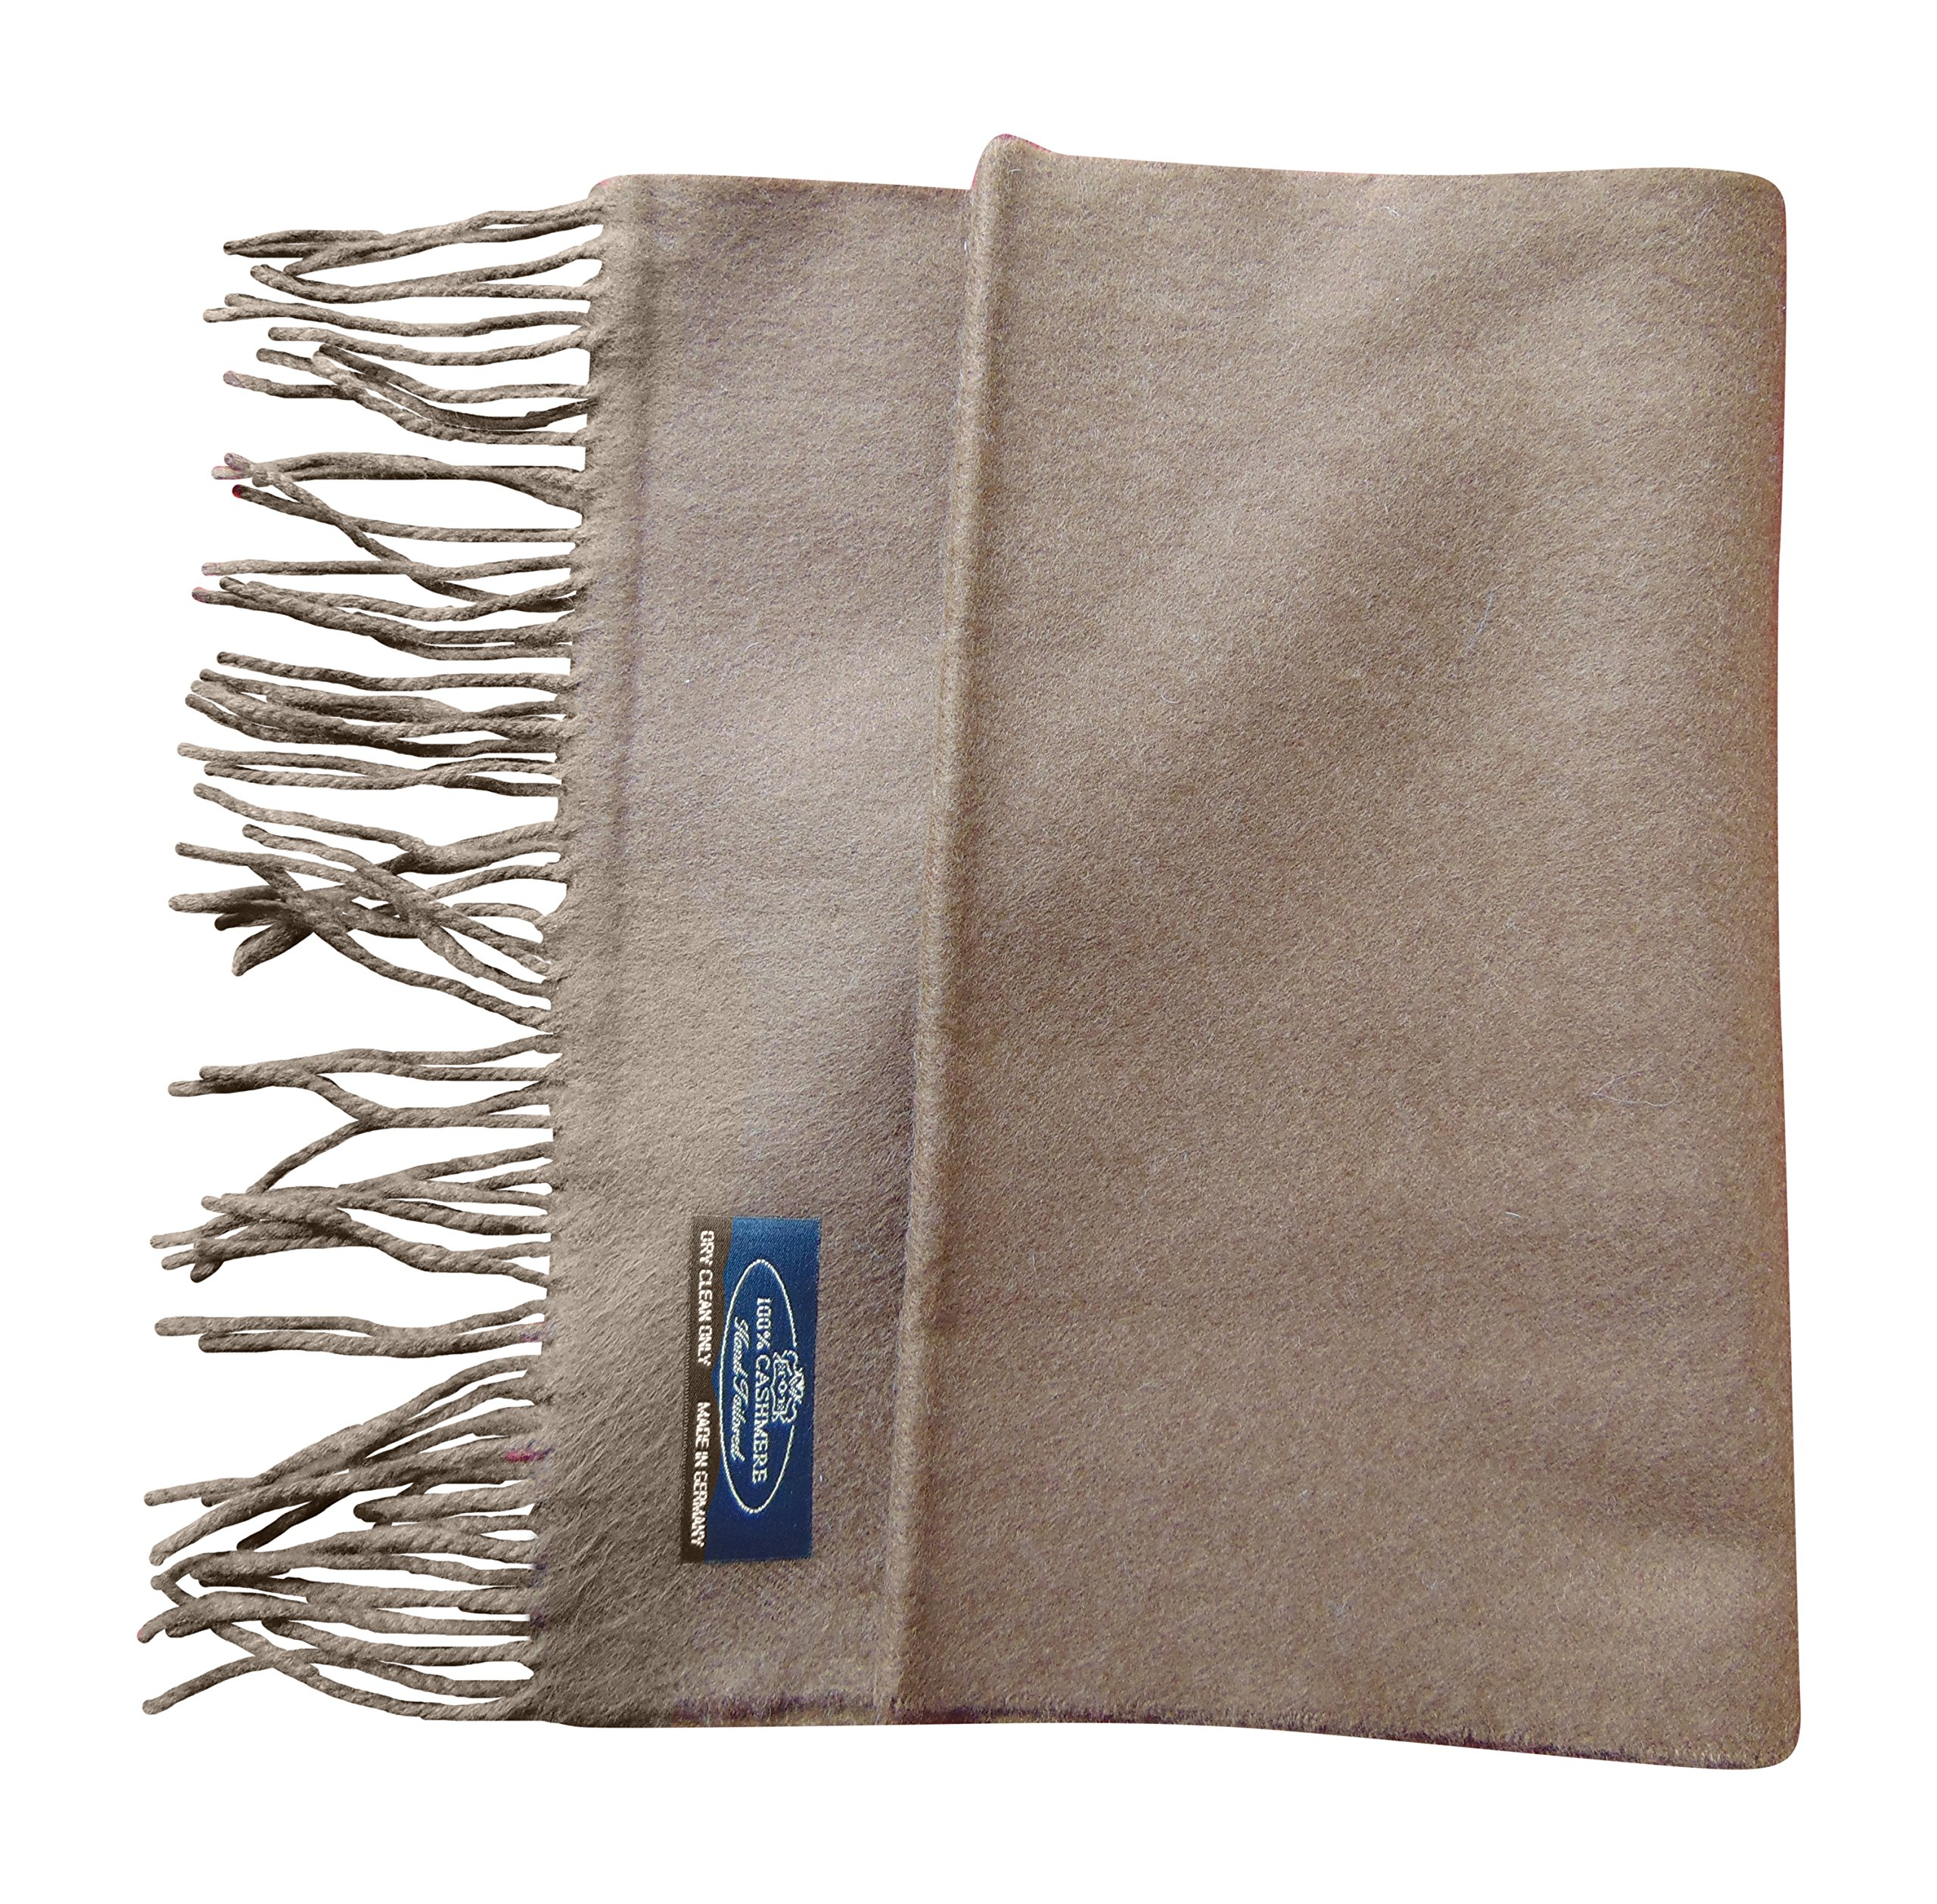 Annys Super Soft 100% Cashmere Scarf 12 X 72 with Gift Bag (Coffee)